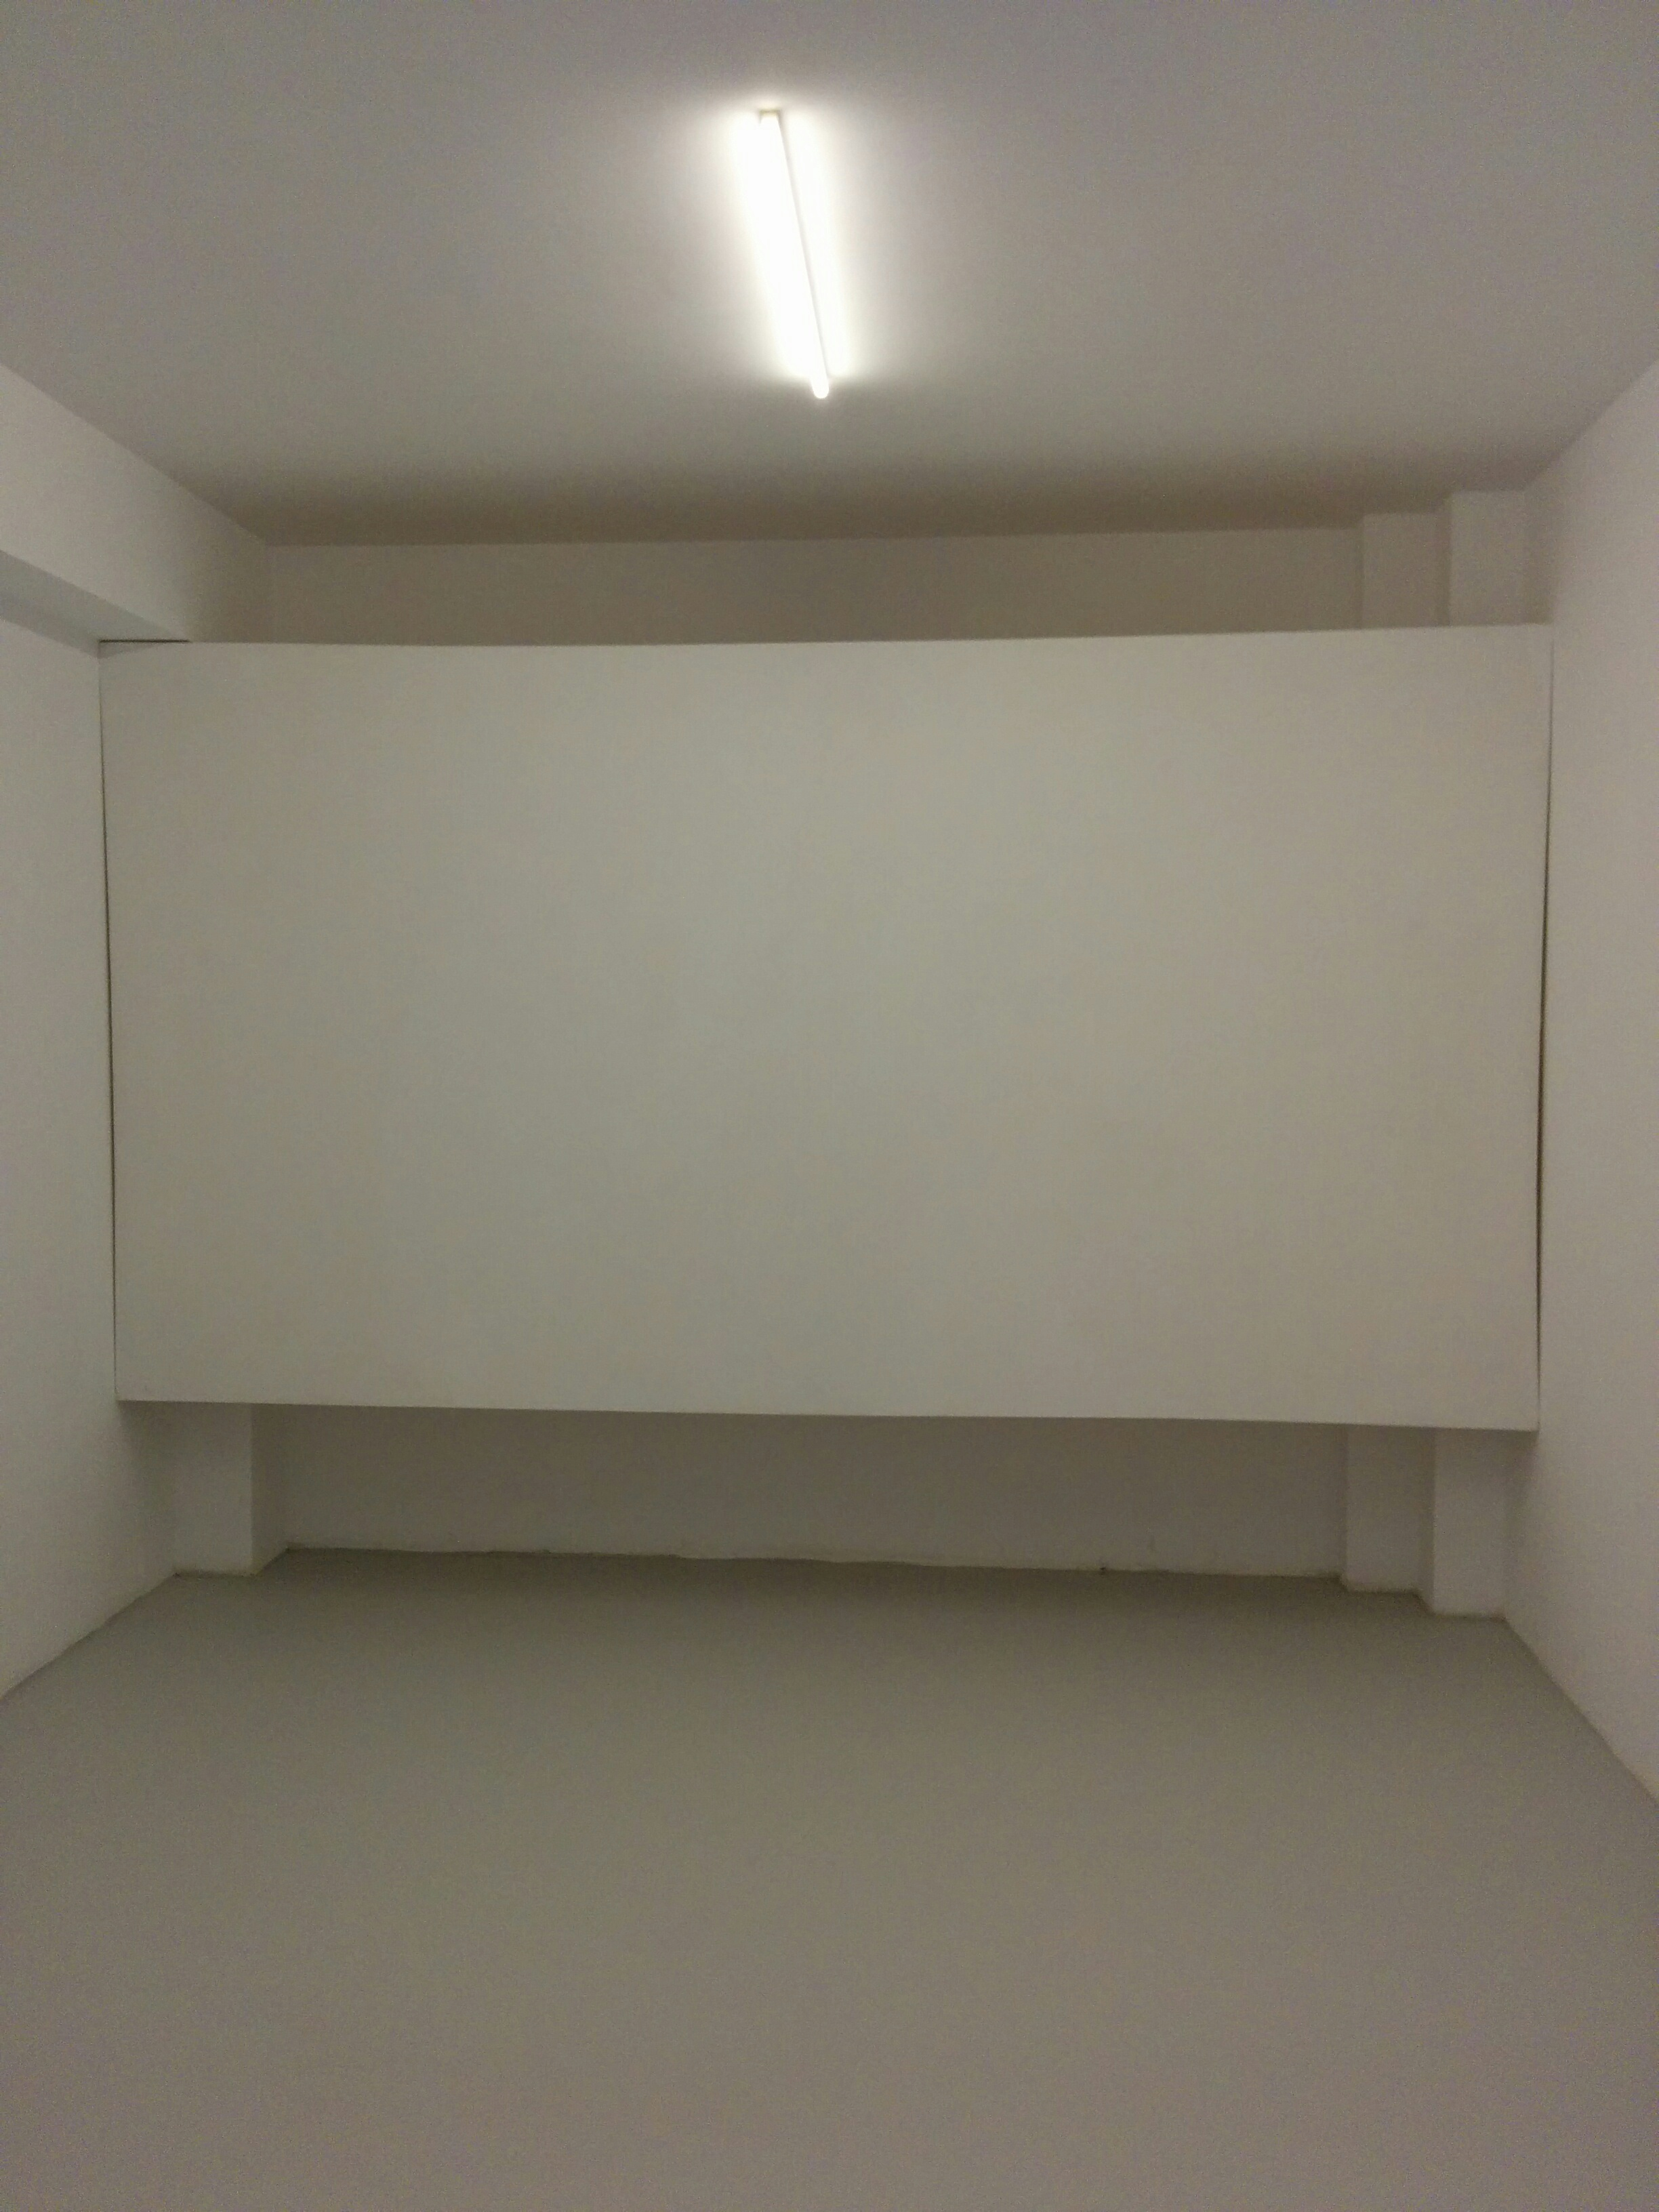 Install day 1, empty projection room.